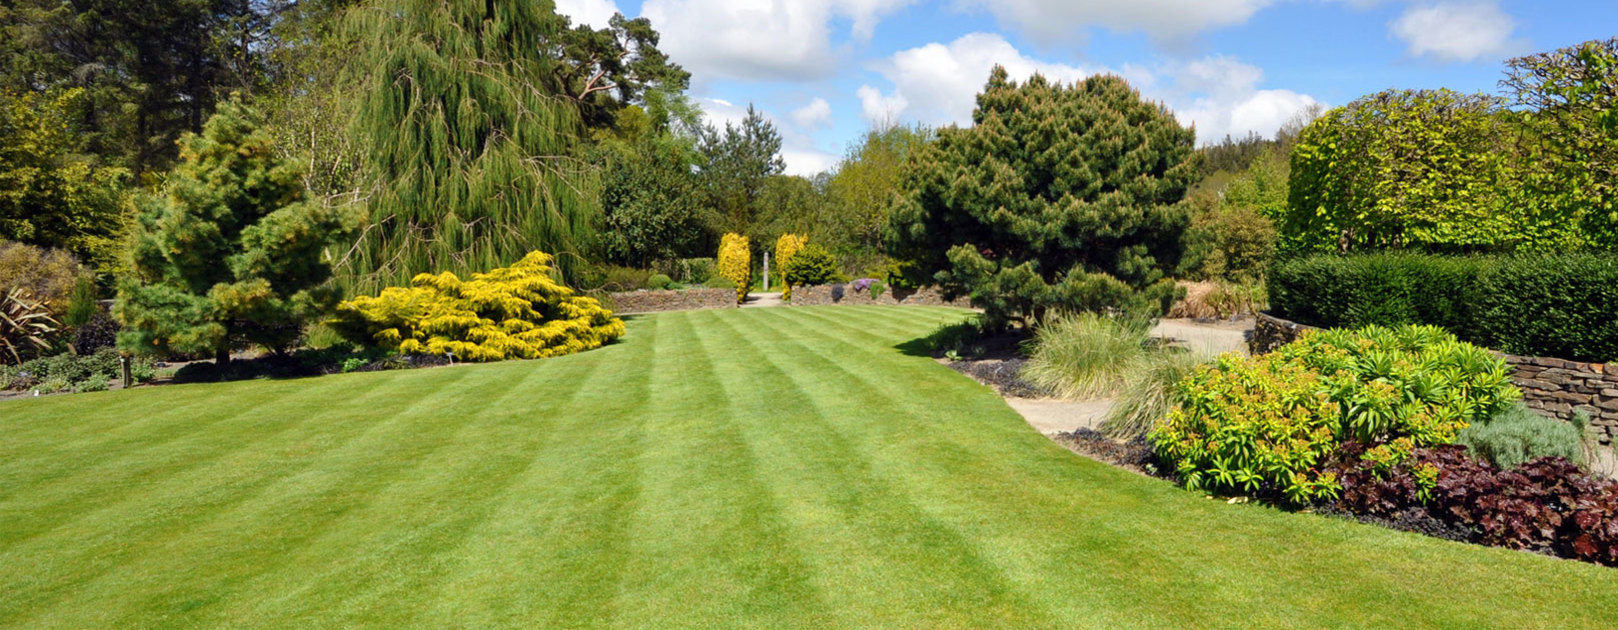 Lawn & Soil Care - Organic Fertilisers - Banner Image